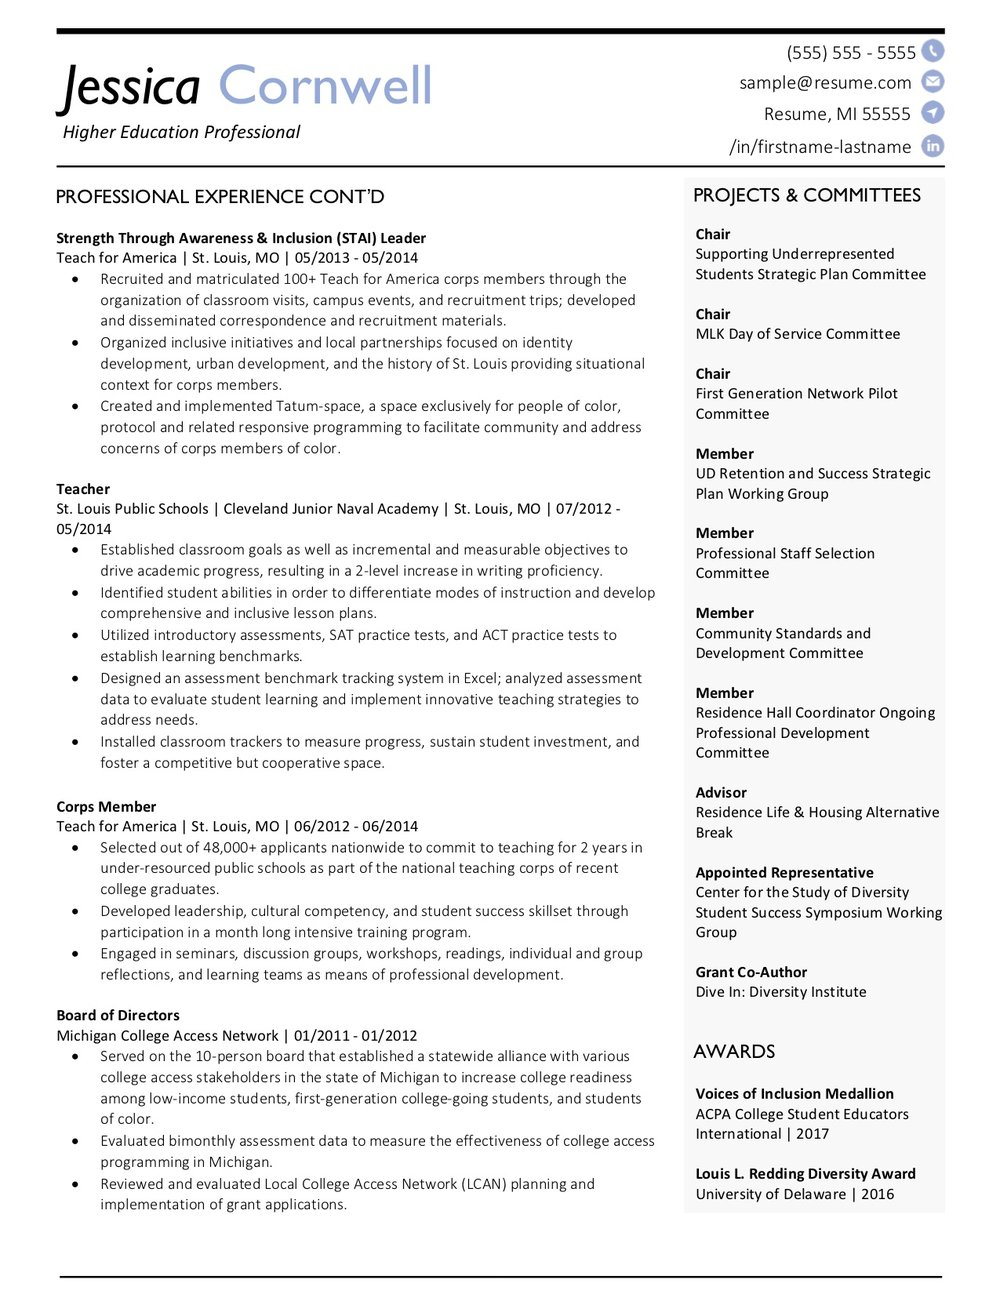 Client Resume #26 pg. 2. Click to enlarge.